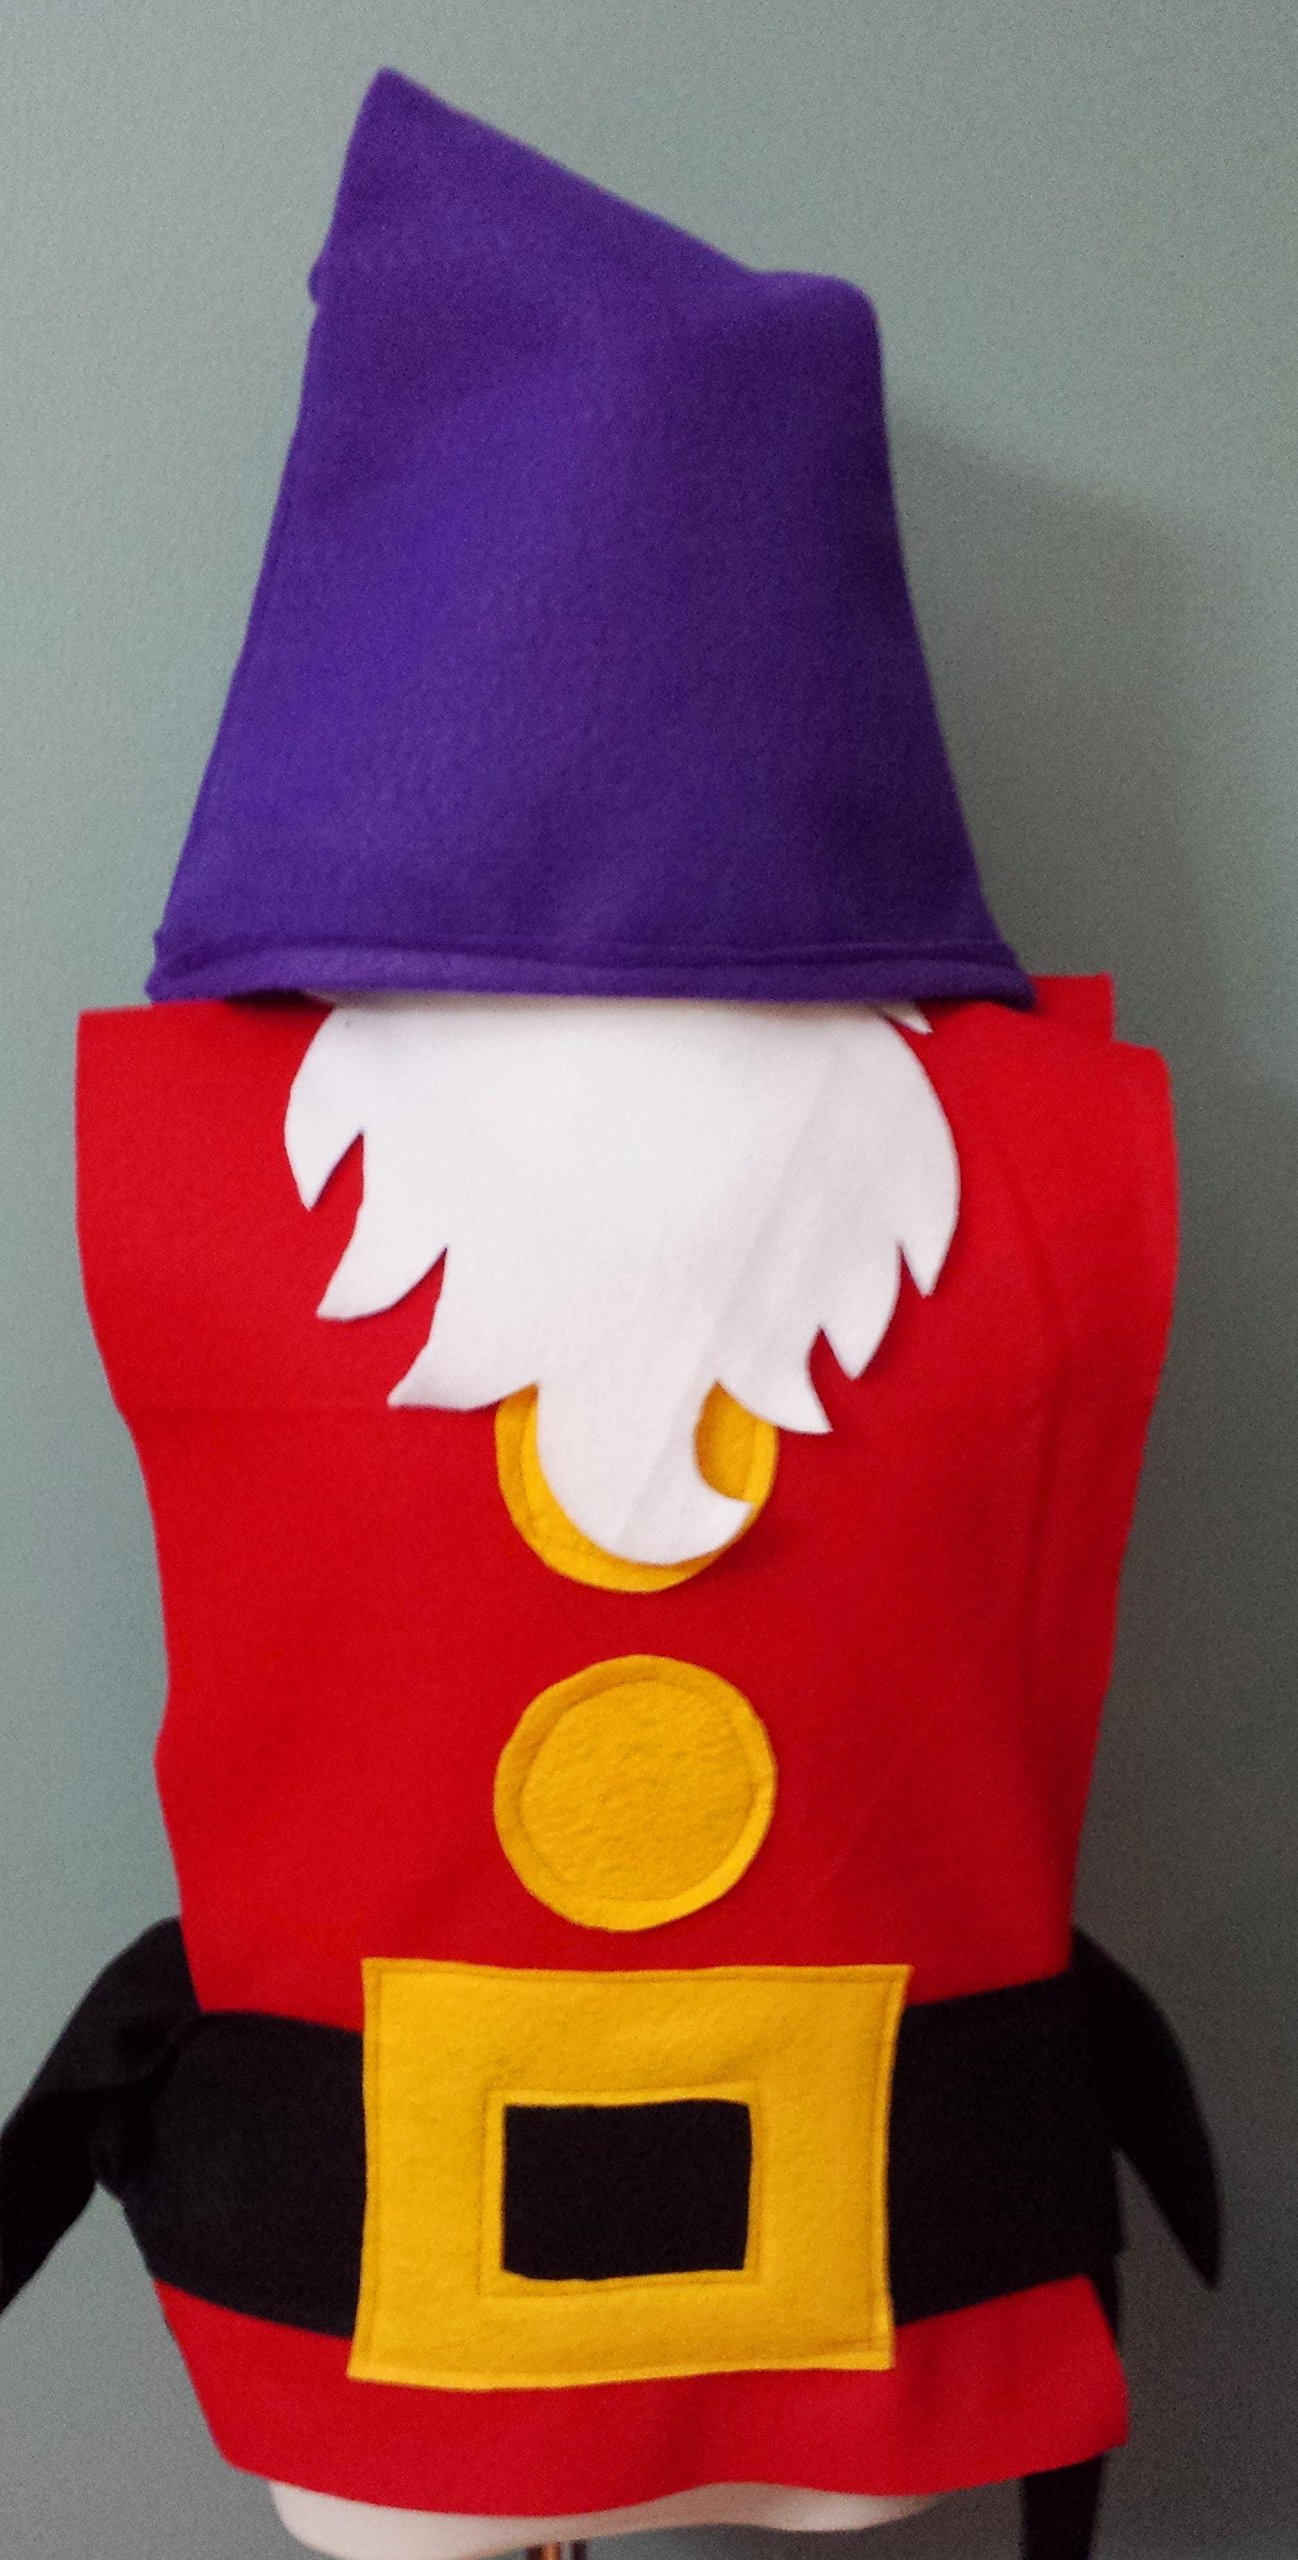 Kids Grumpy Dwarf Costume Set (Snow White and the Seven Dwarfs) - Baby/Toddler/Kids/Teen/Adult Sizes